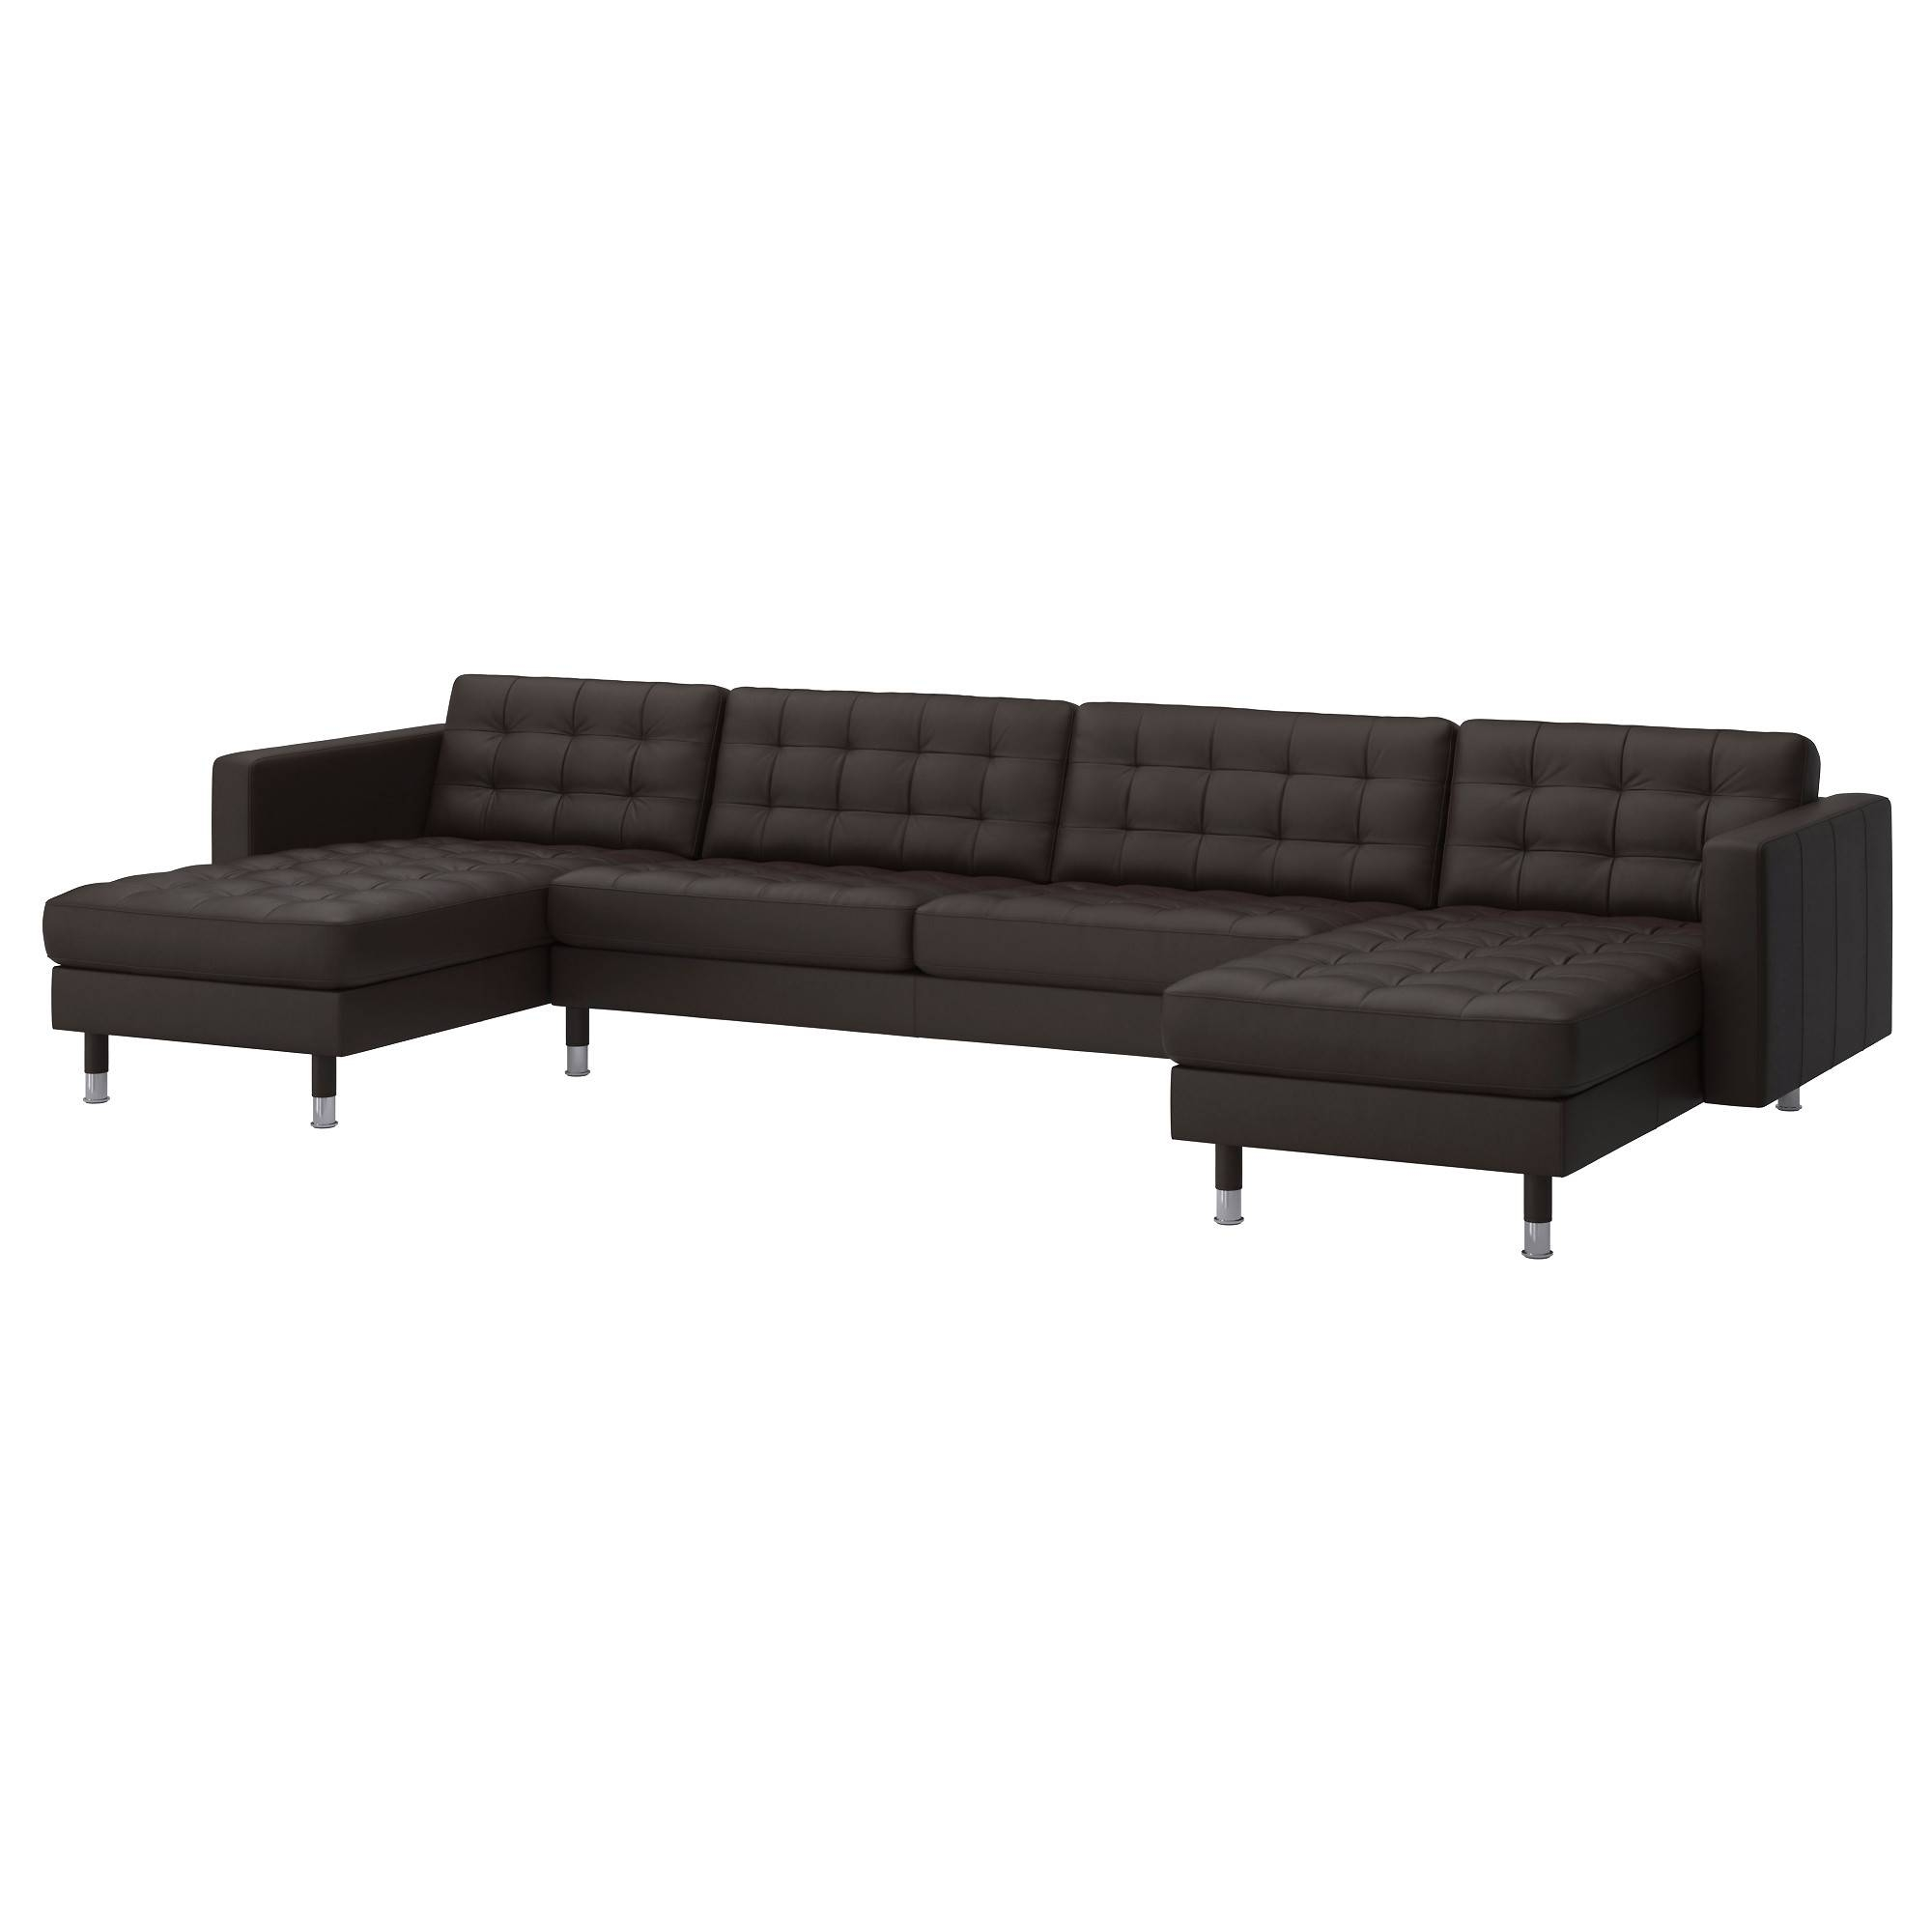 Sectional Sofas & Couches - Ikea intended for 45 Degree Sectional Sofa (Image 20 of 30)